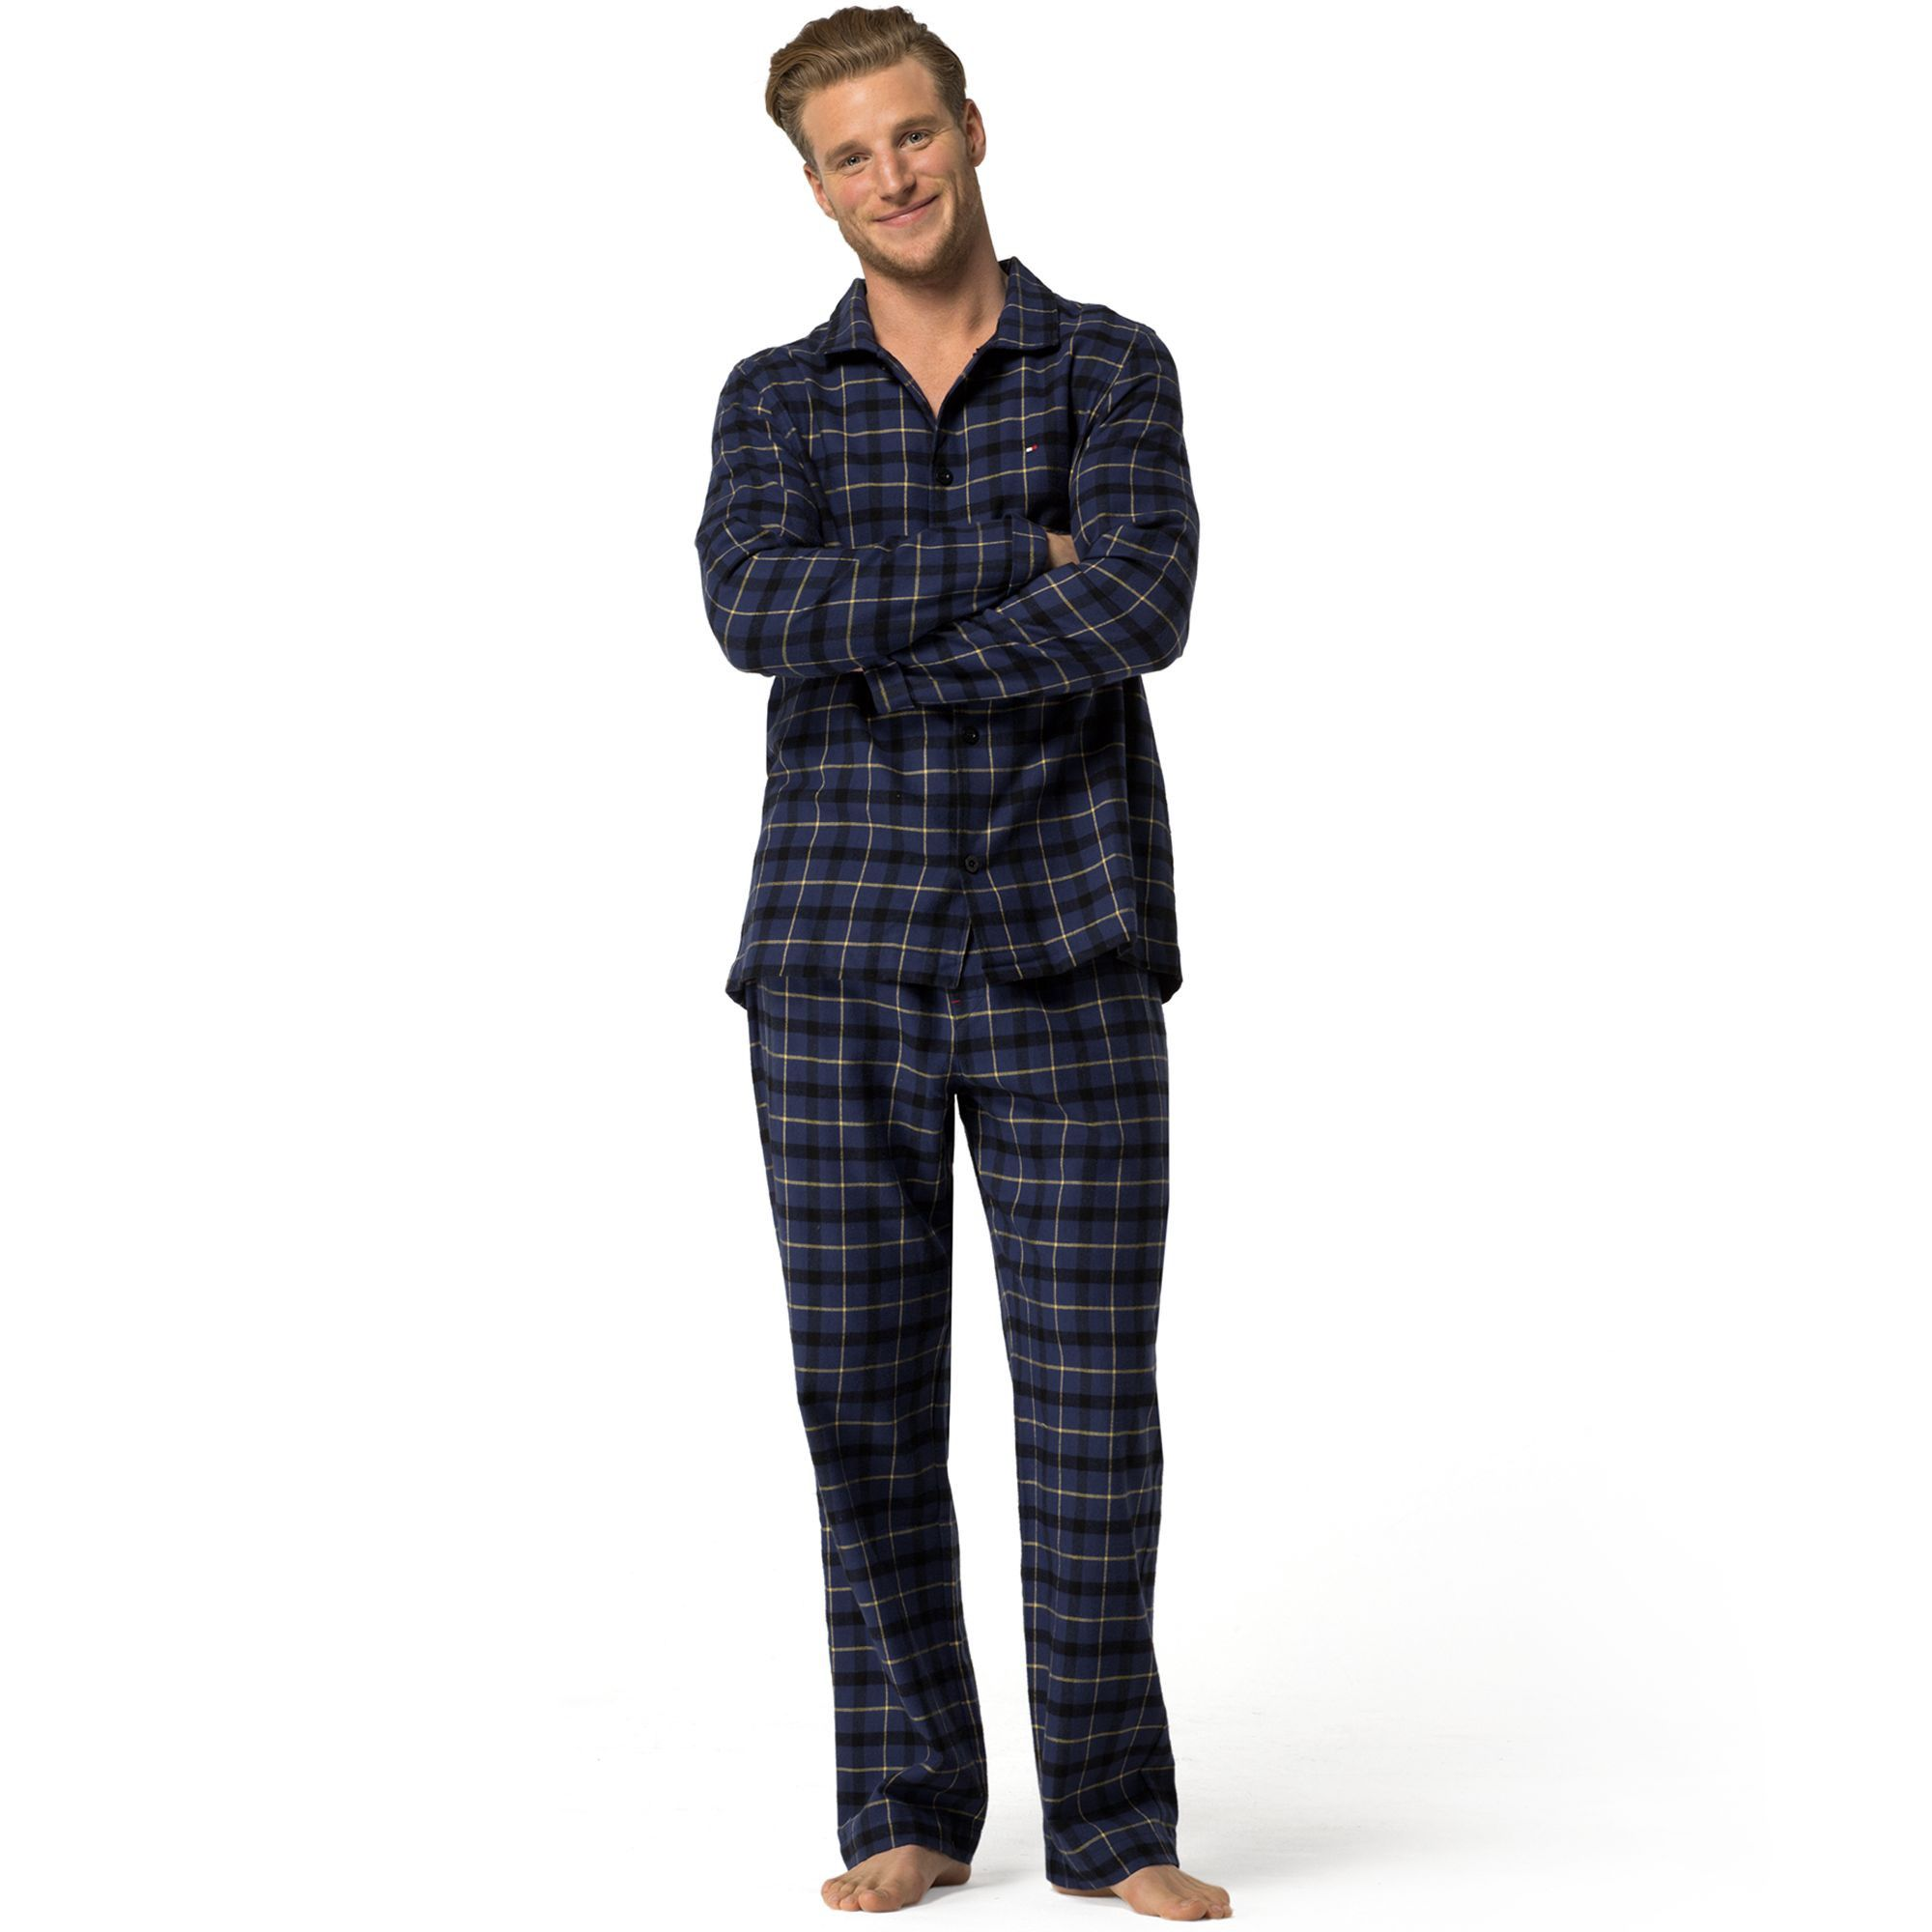 TOMMY HILFIGER PLAID FLANNEL PAJAMA SET BLUEPRINT